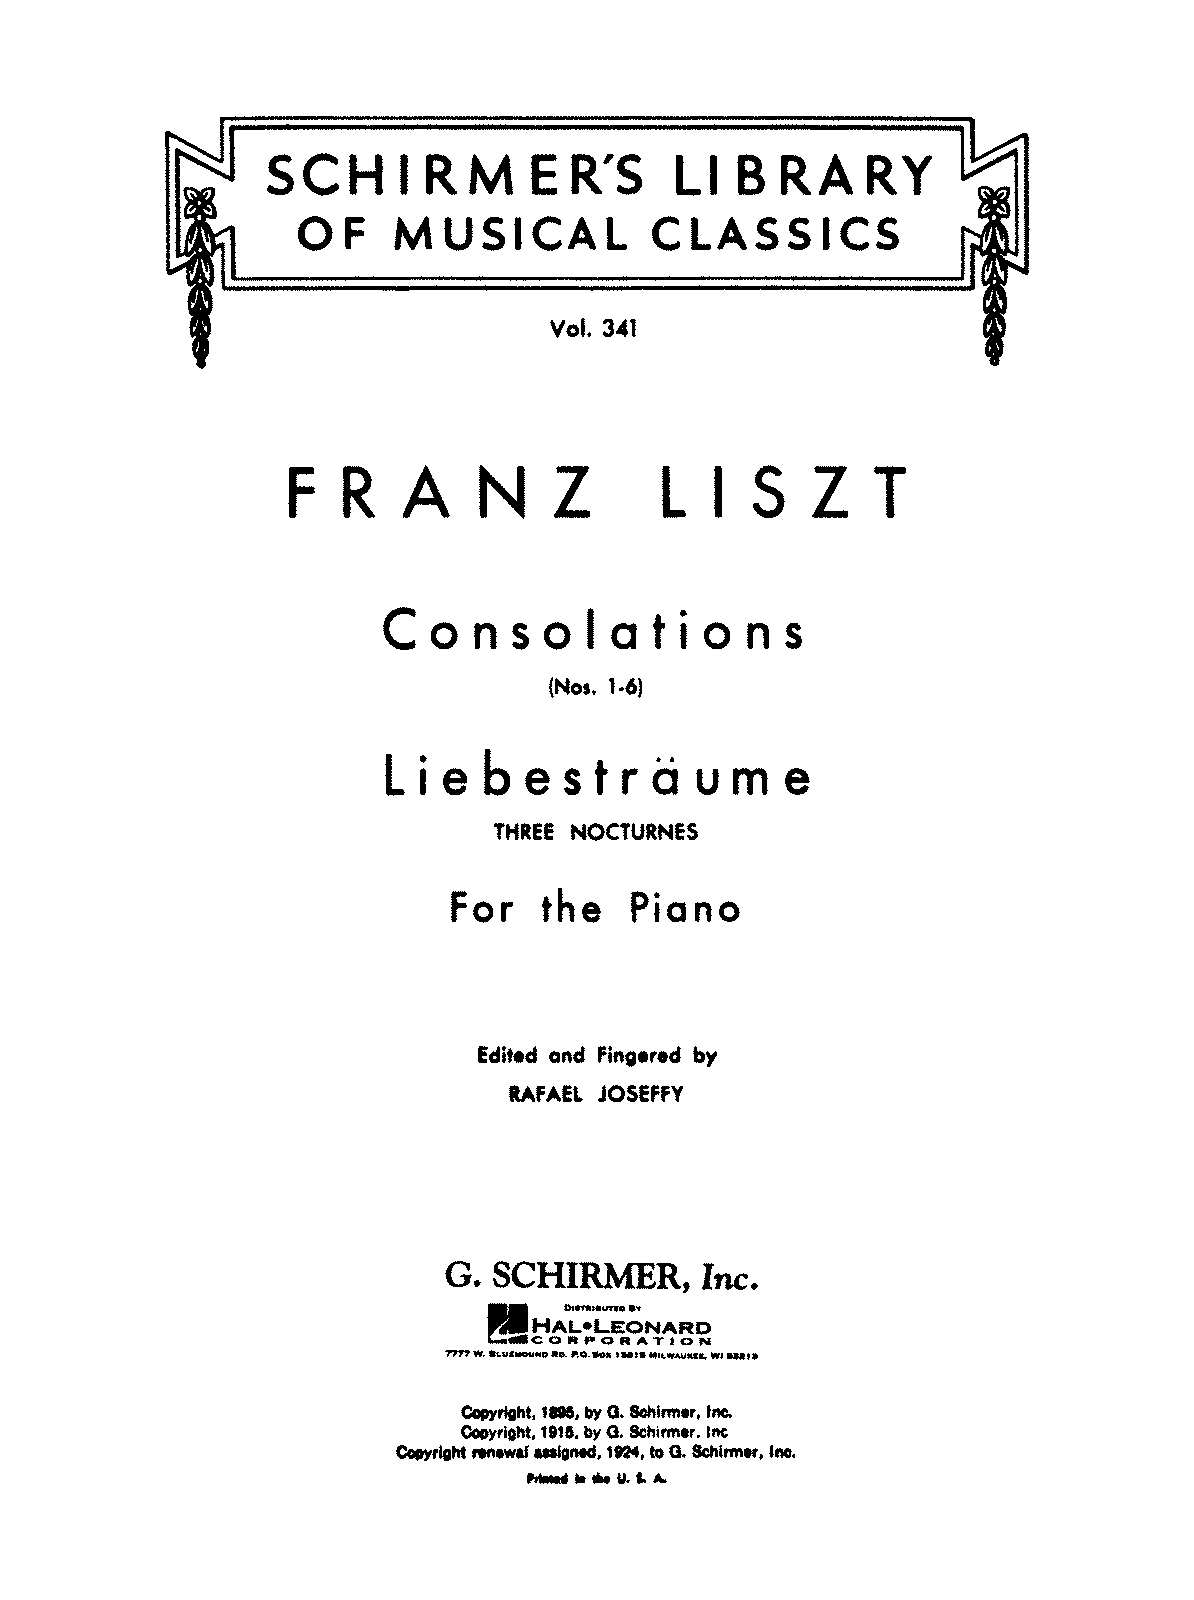 PMLP656102-FLiszt Consolations and Liebesträume for the Piano LMC341.pdf